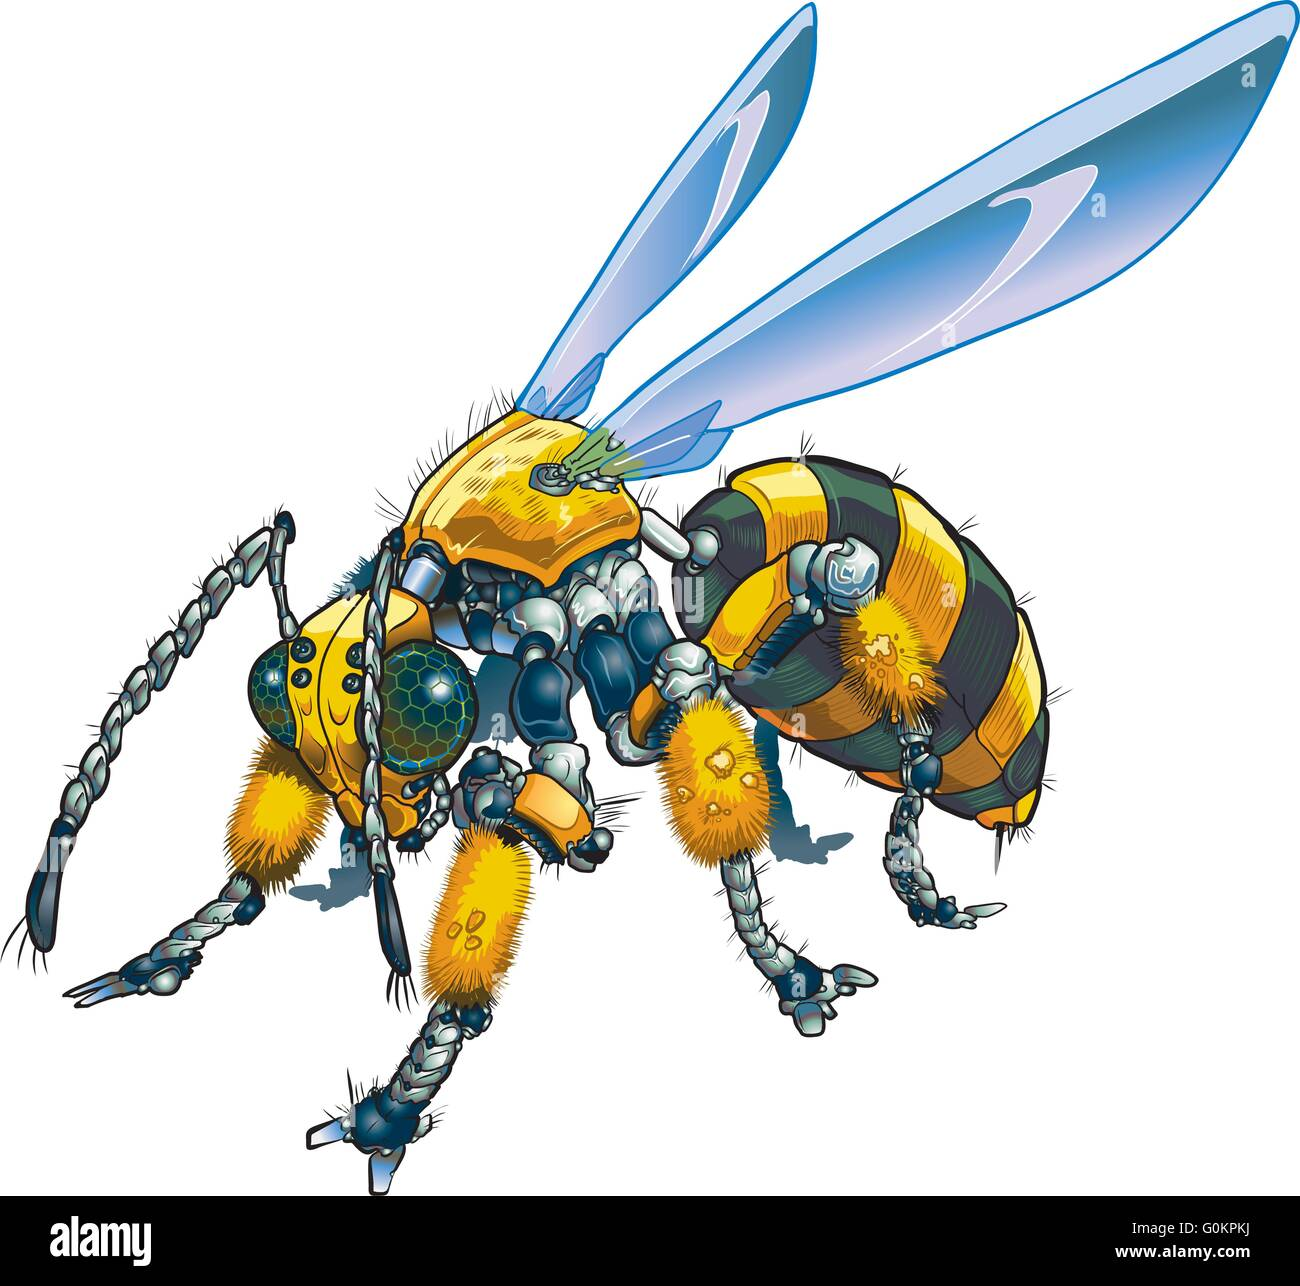 Vector cartoon clip art illustration of a robot wasp or bee. Could also be a conceptual illustration of future drone - Stock Image